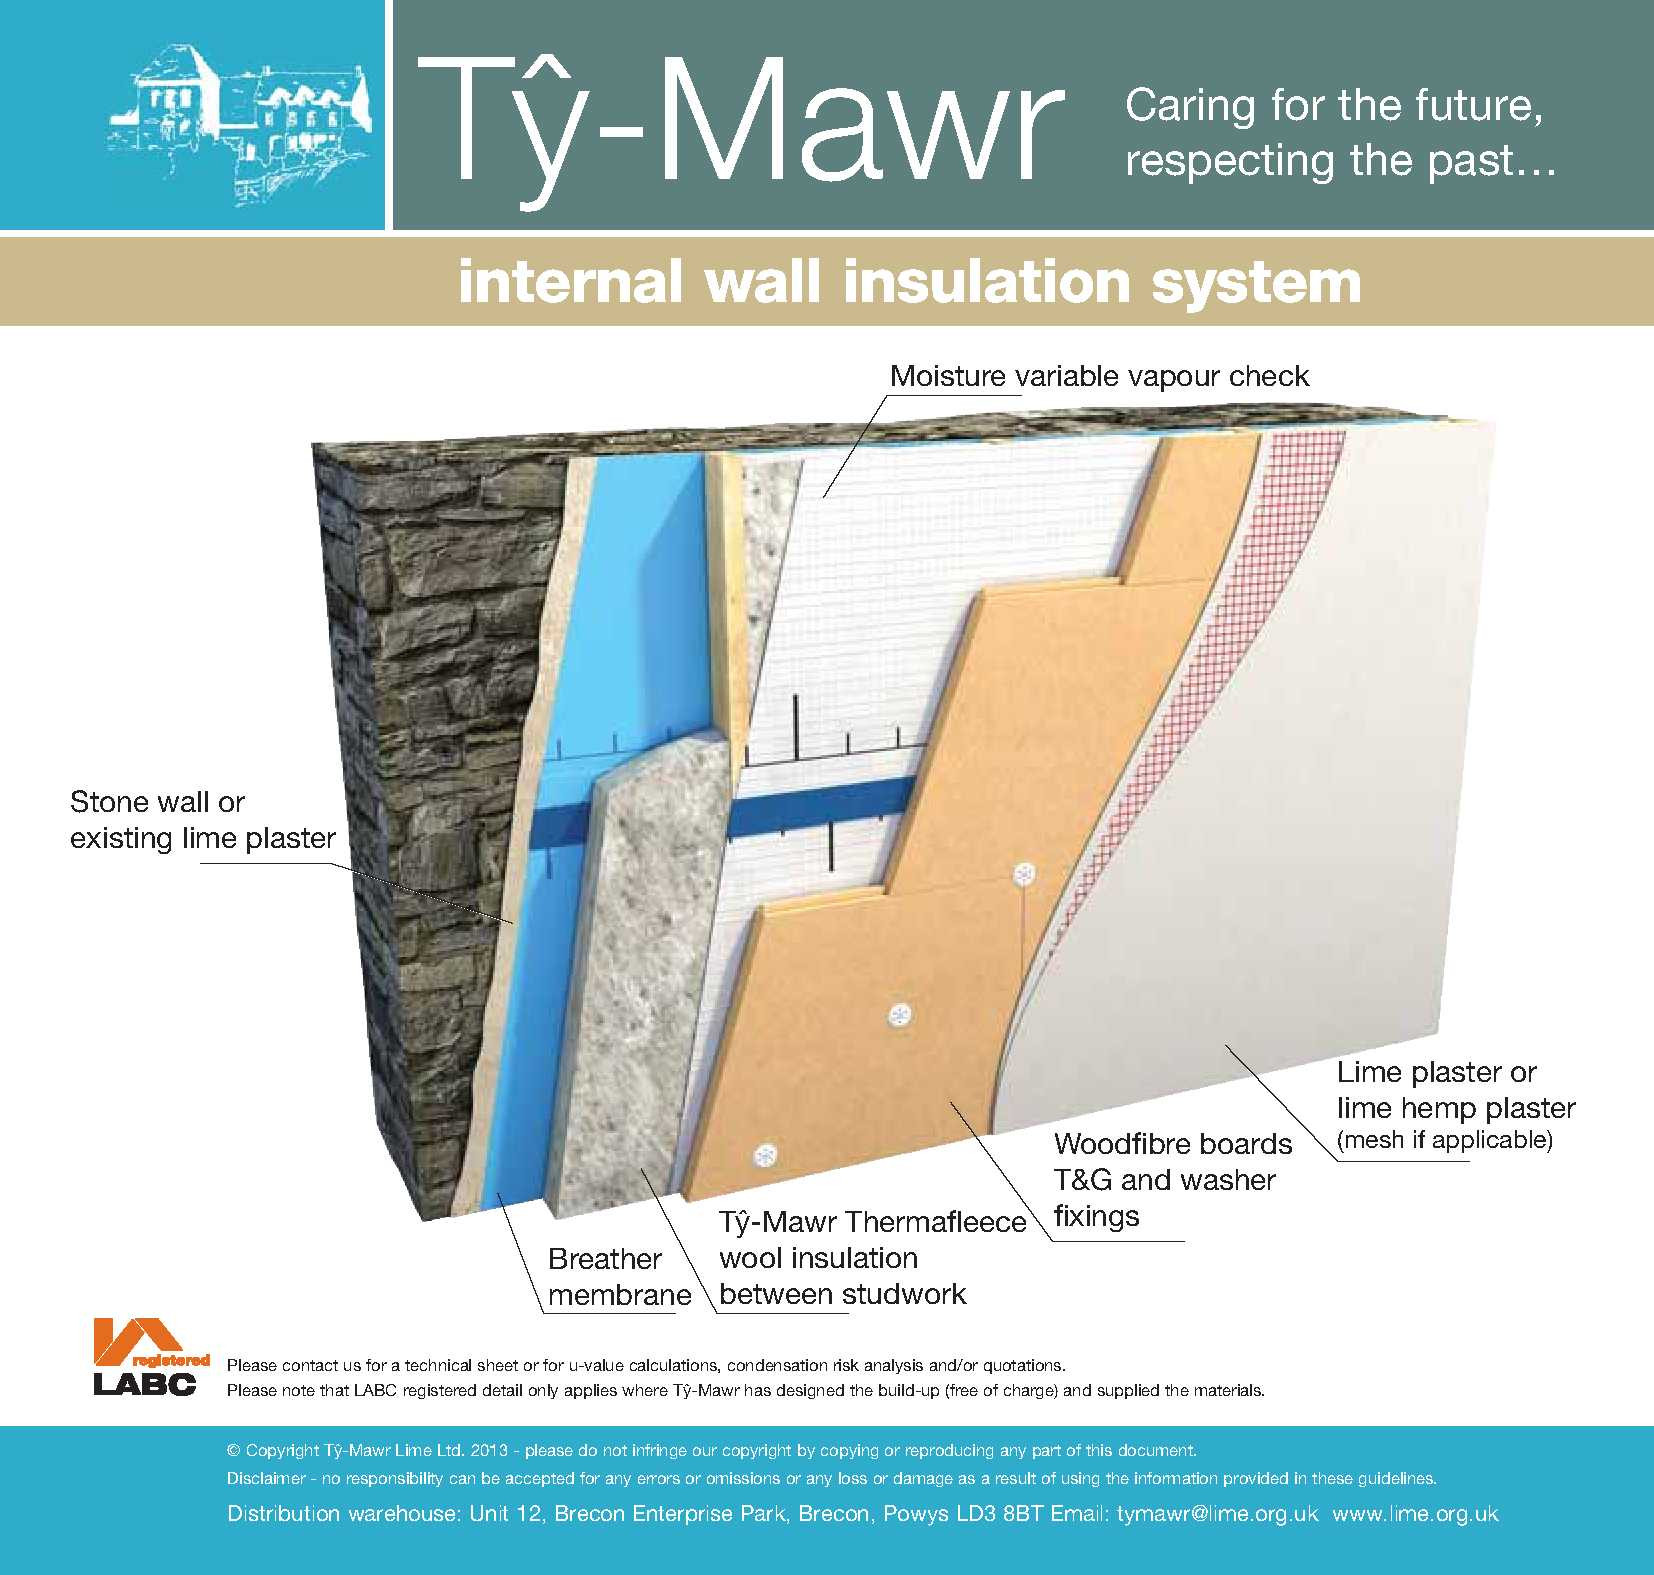 Internal Wall Insulation System - Sheeps Wool & Woodfibre